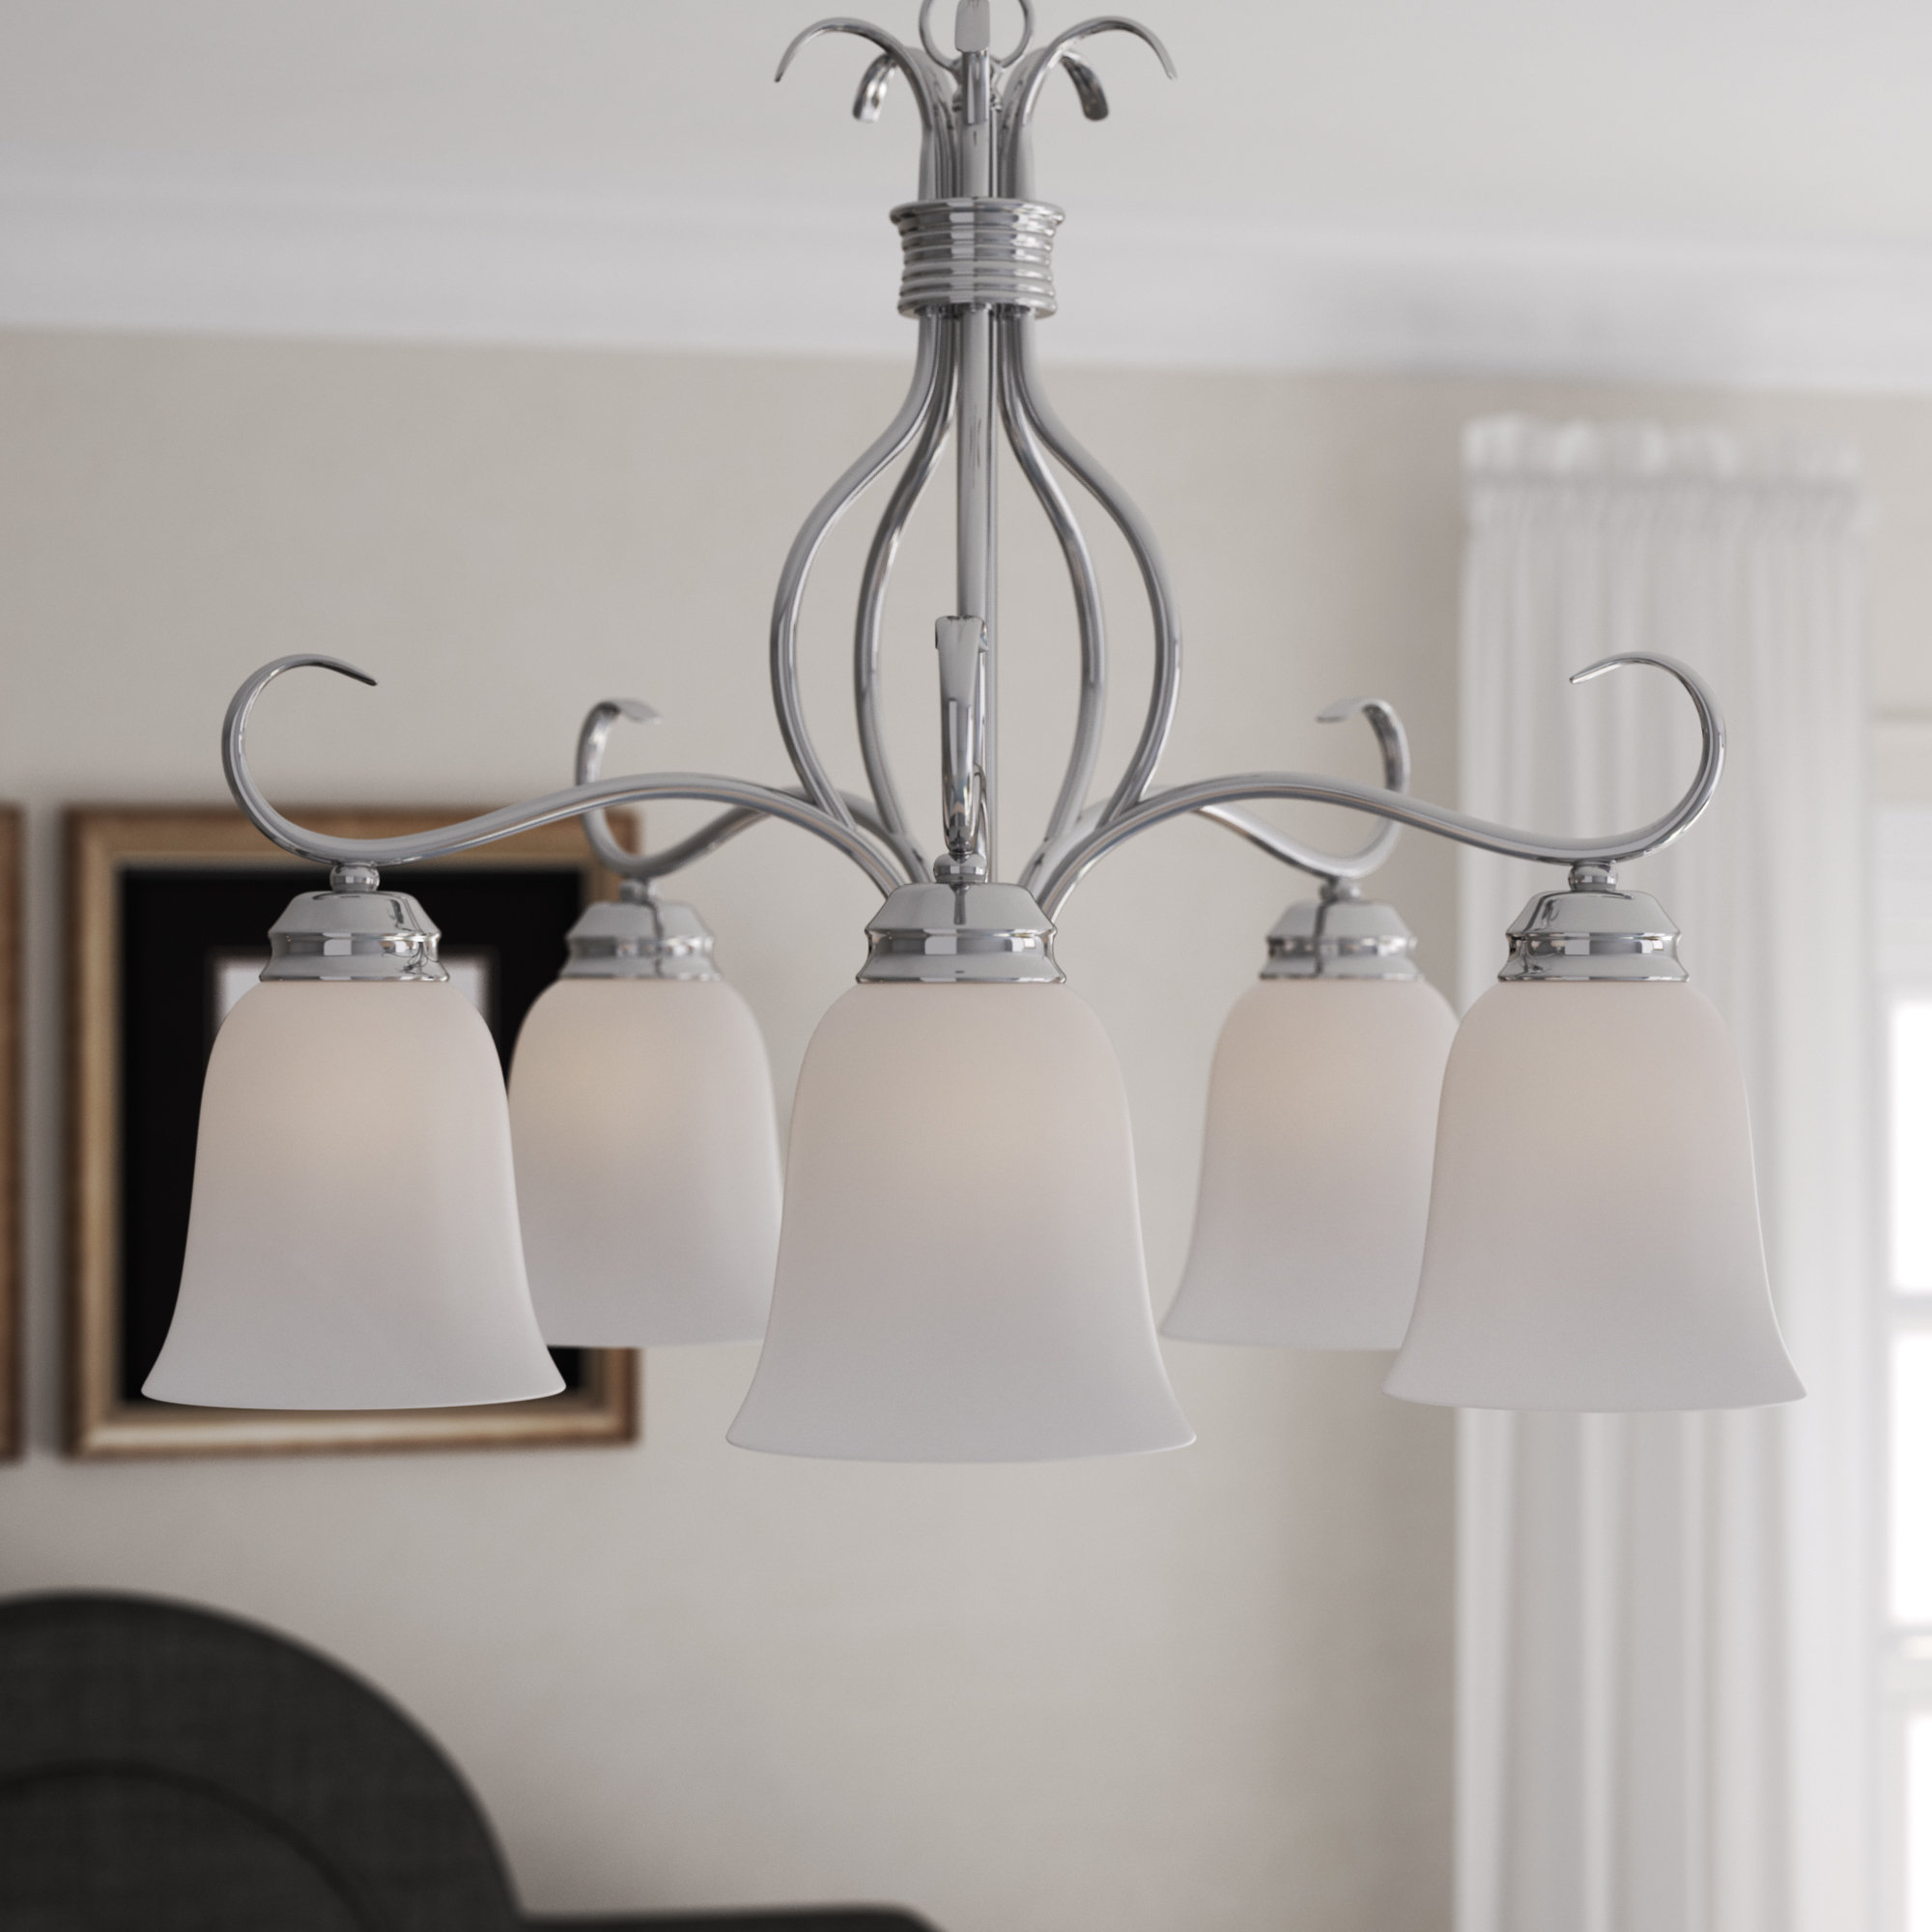 Charlton Home Wehr 5 Light Shaded Chandelier & Reviews Within Most Current Newent 5 Light Shaded Chandeliers (View 6 of 25)